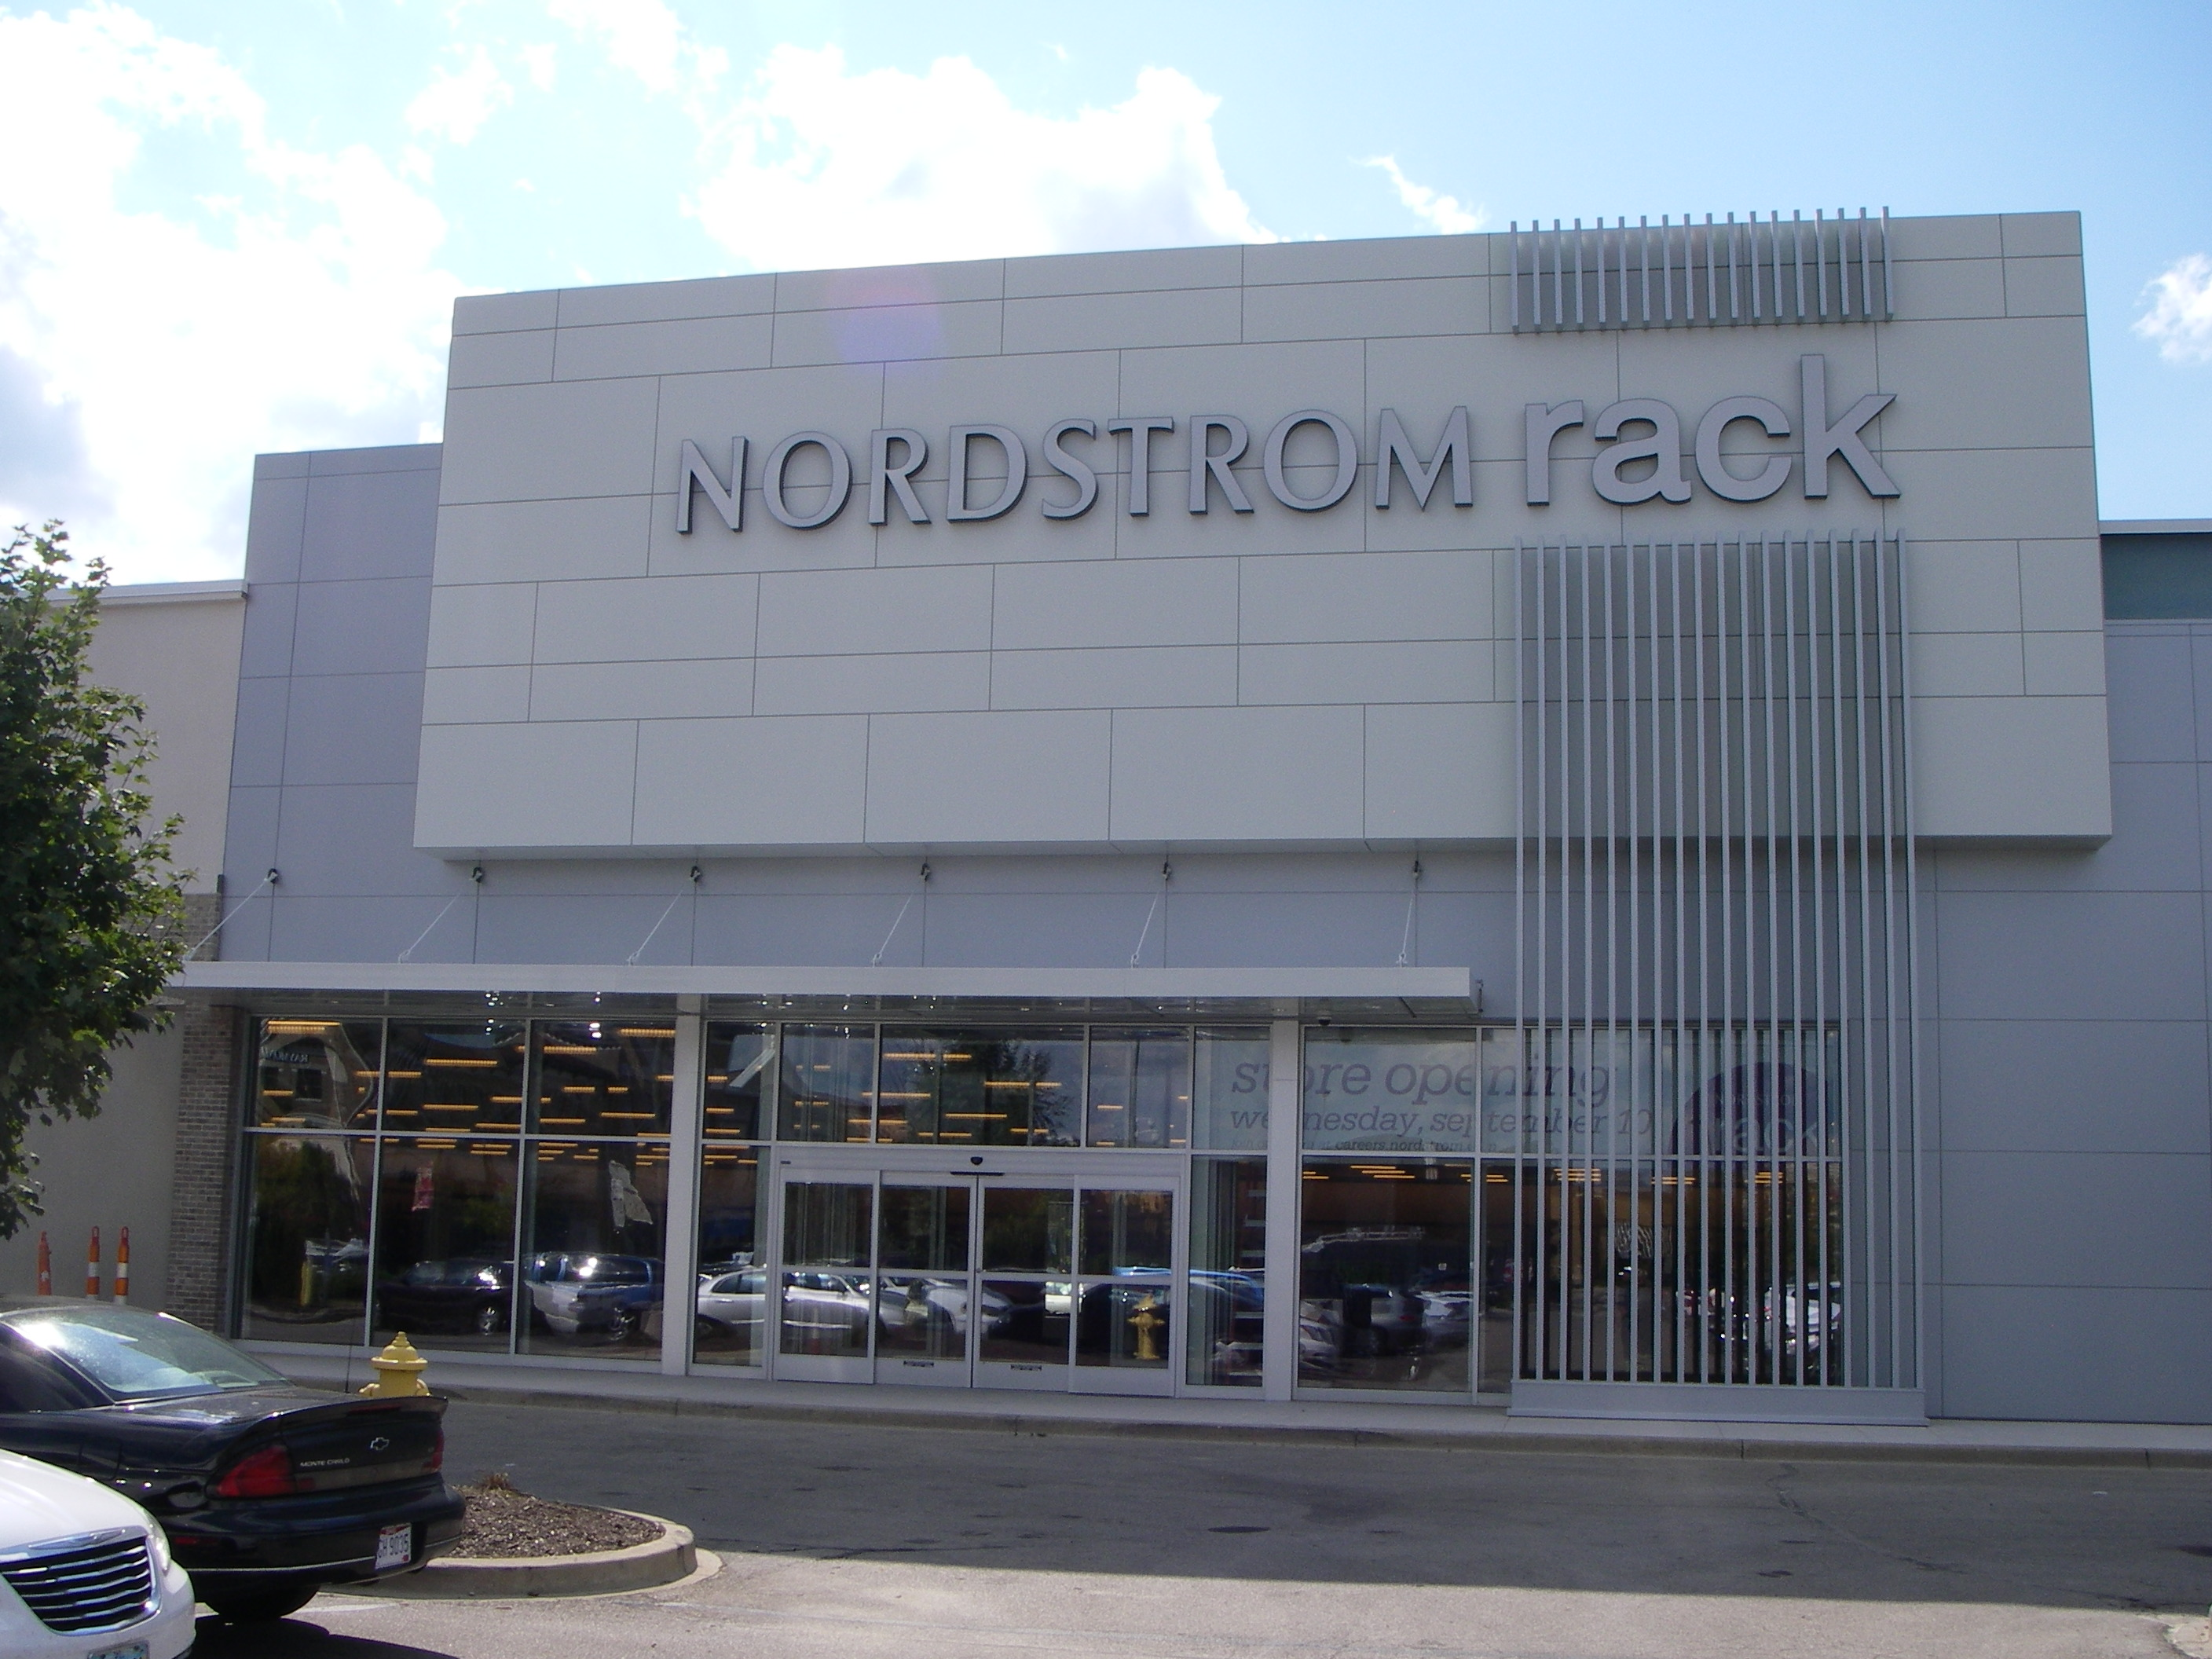 Nordstrom Rack at the Green (Dayton)